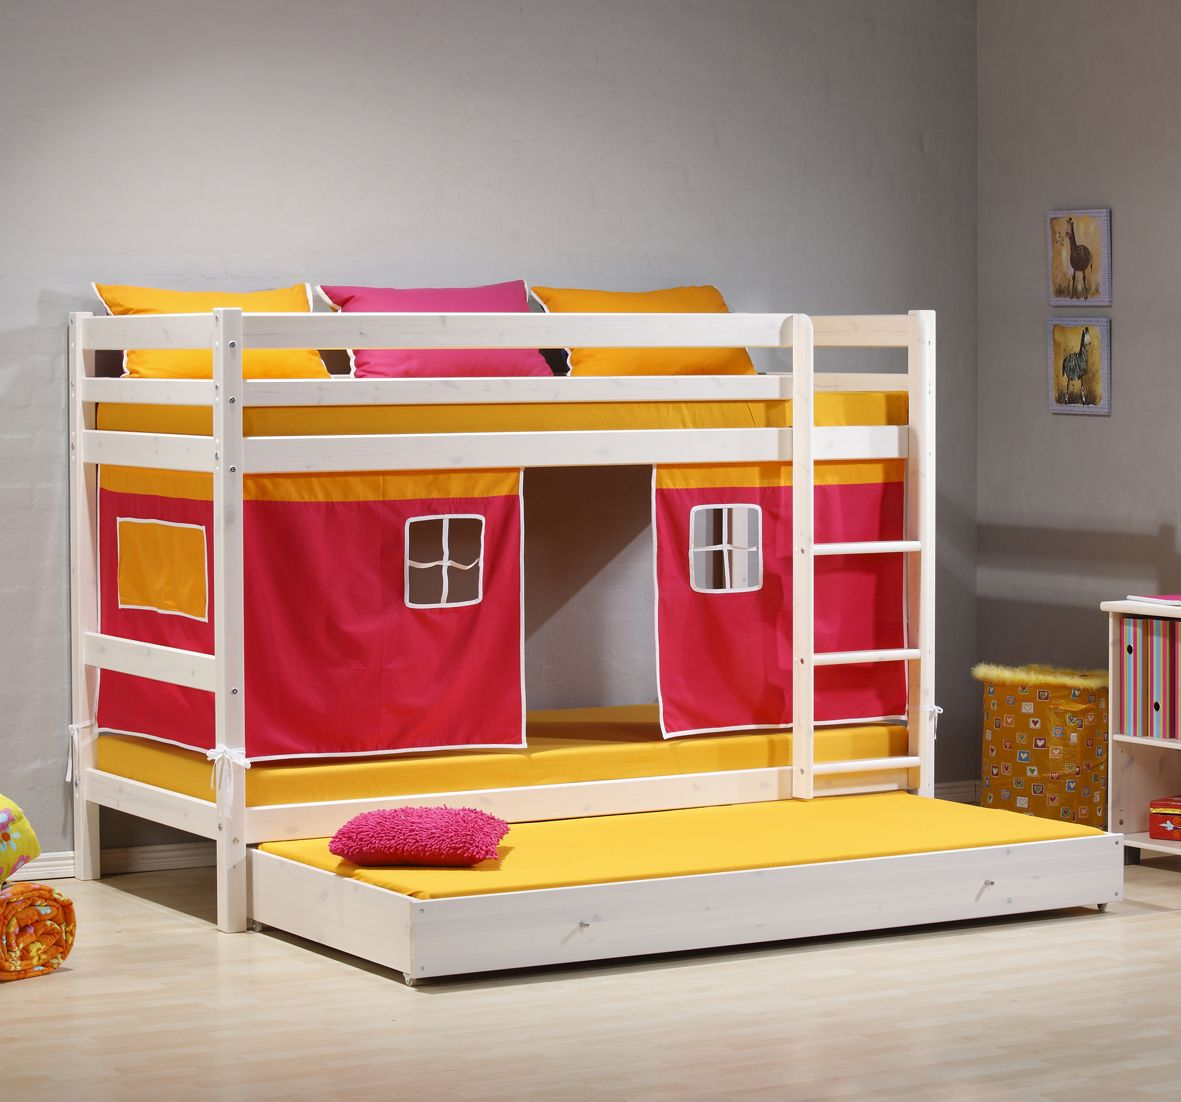 Triple bunk beds for teenagers - Extraordinary Teens Bunk Beds Engaging Furniture Teens Bedroom Minnie Solid Pine White Bunk Bed With